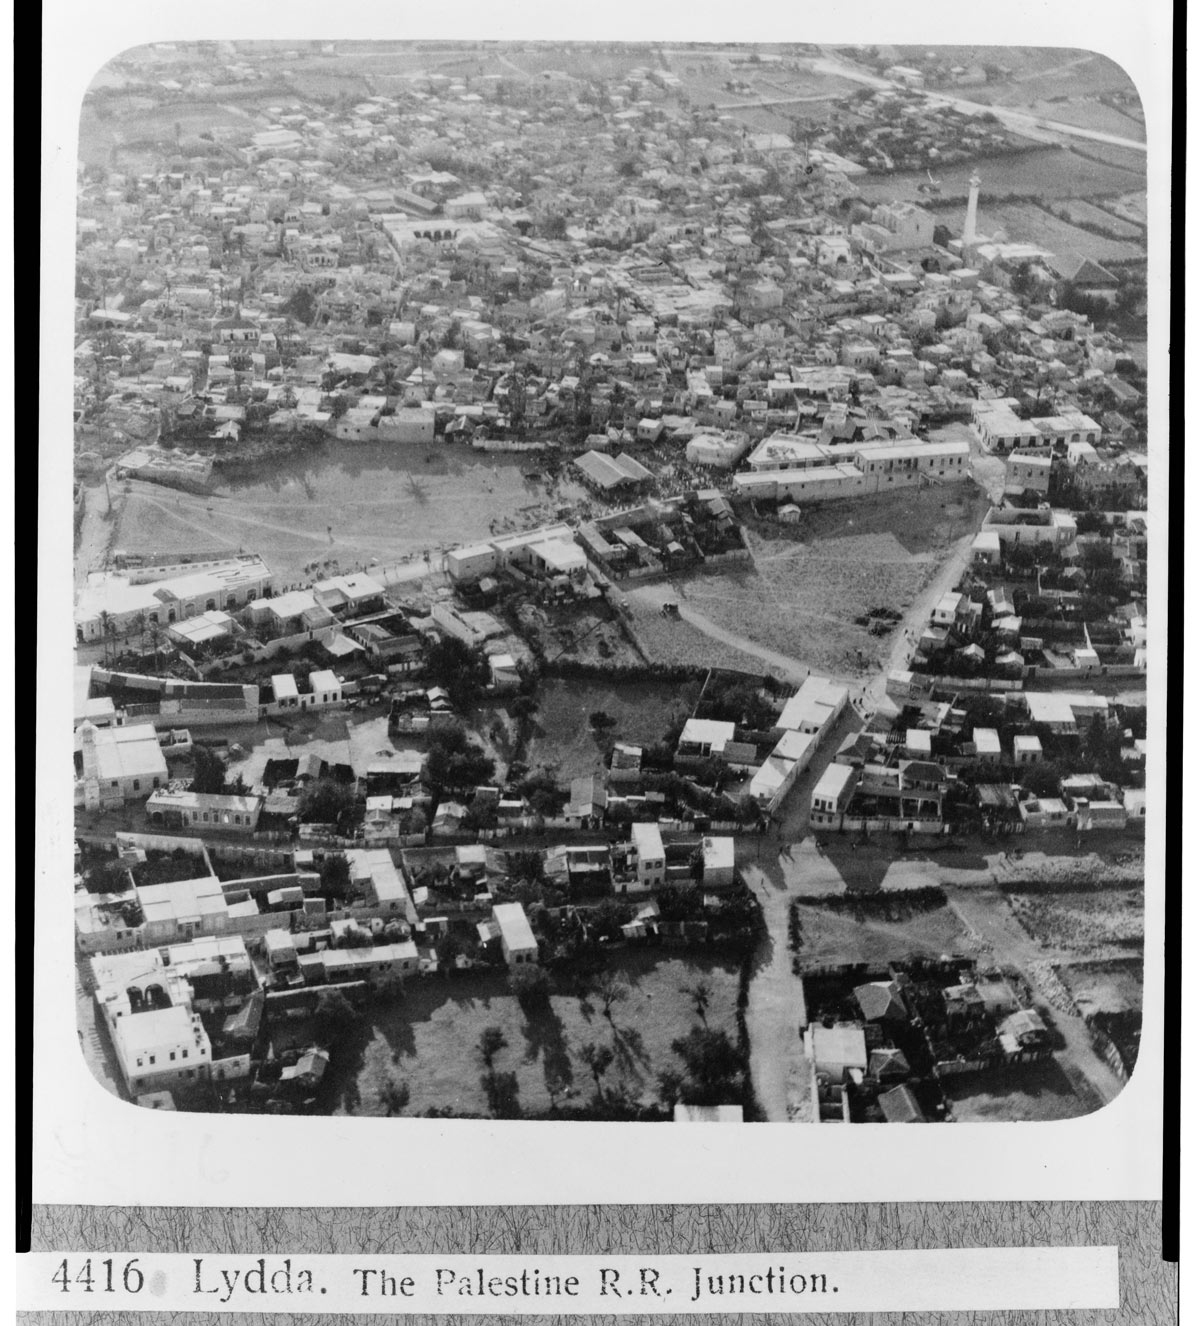 An aerial view of Lydda in the 1930s. From the G. Eric and Edith Matson Photograph Collection, Library of Congress.